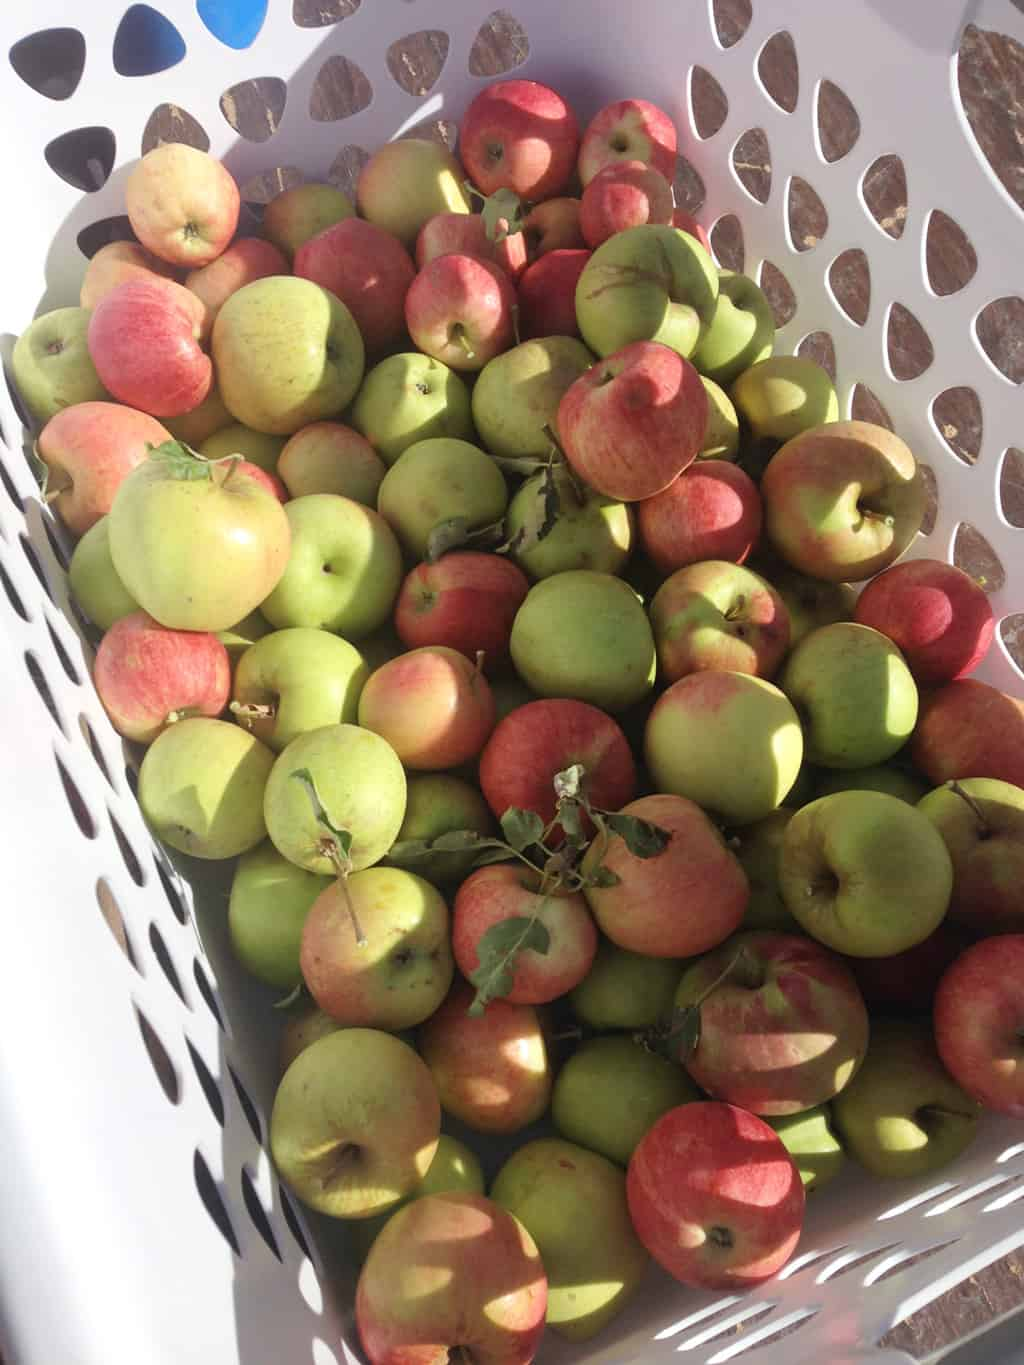 A laundry basket full of apples